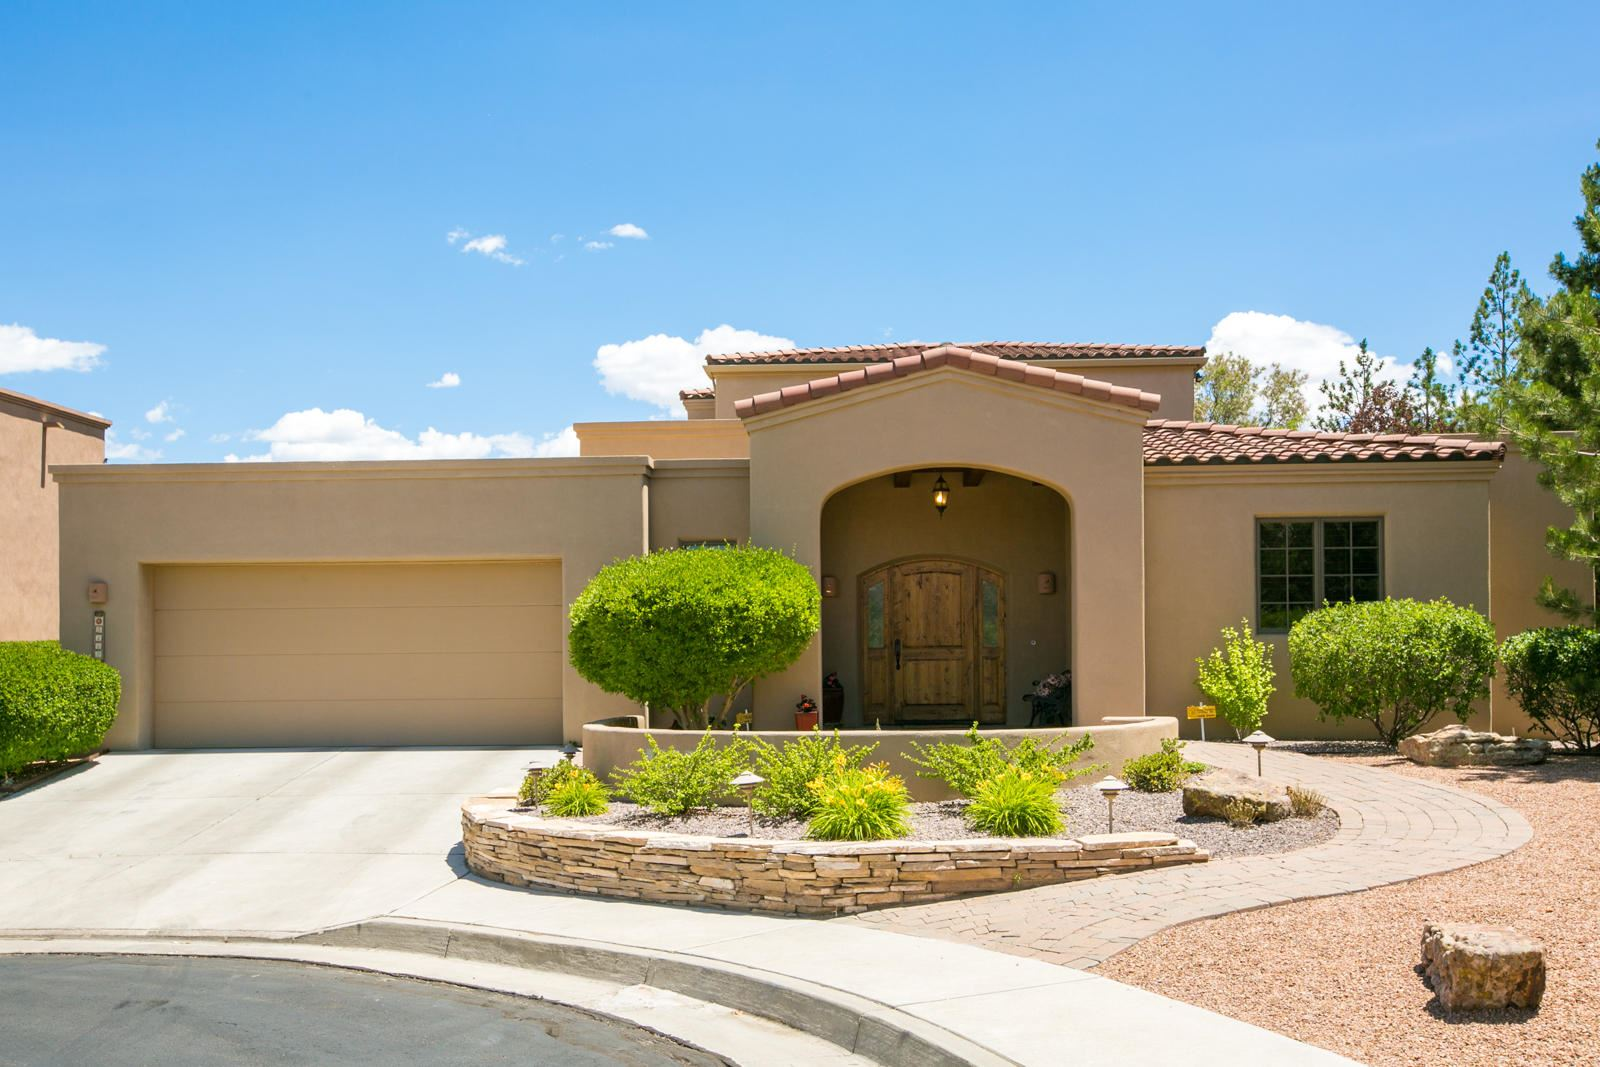 Photo of 5112 COYOTE HILL Way NW, Albuquerque, NM 87120 (MLS # 969160)